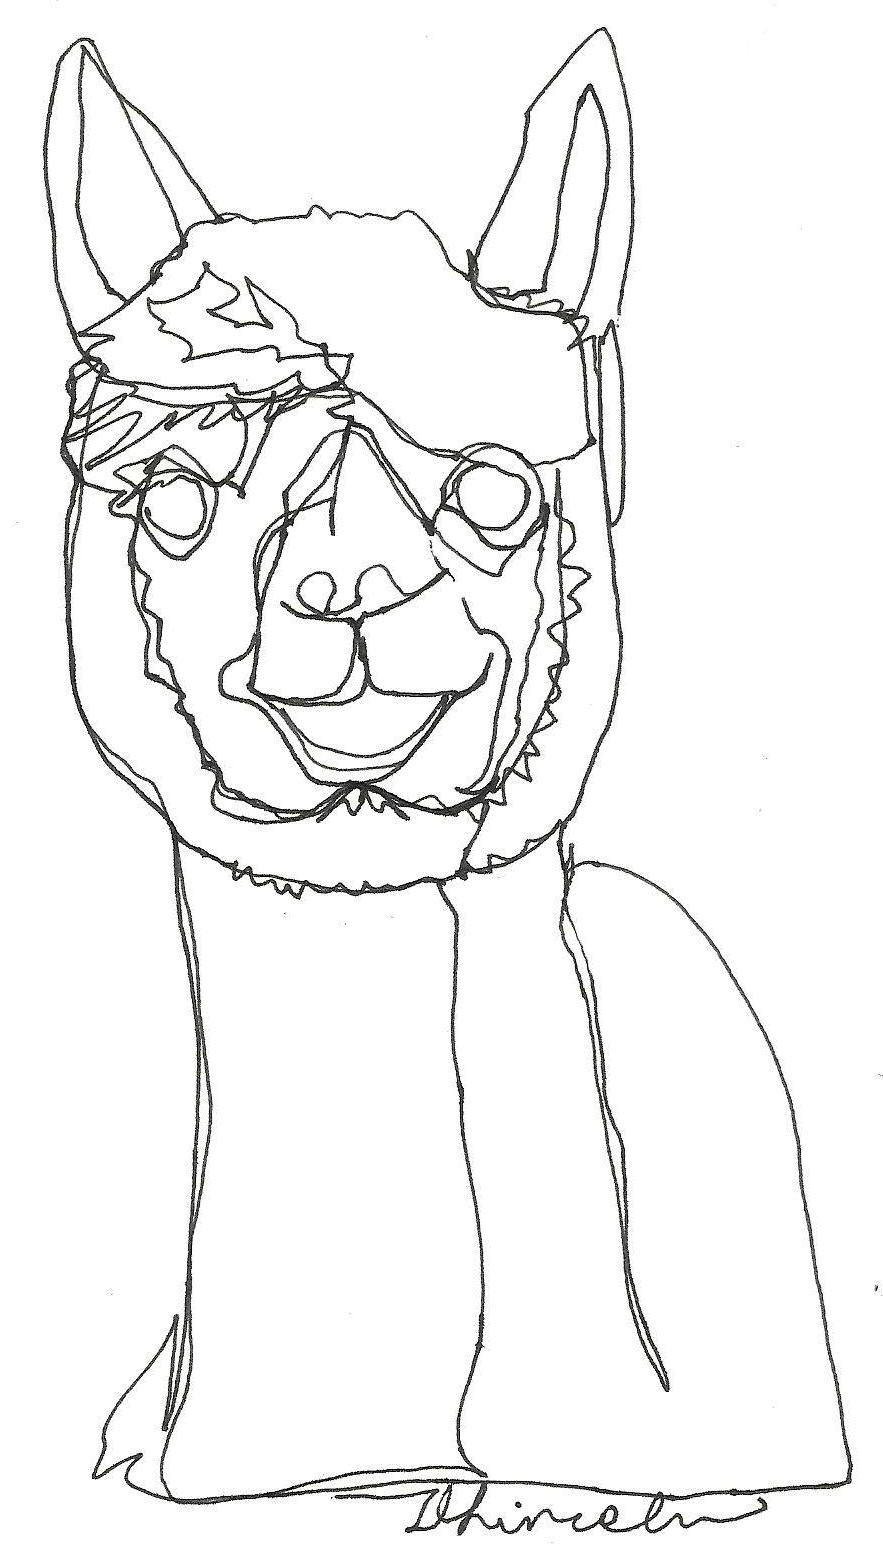 Continuous Line Drawing Faces : Alpaca face drawings